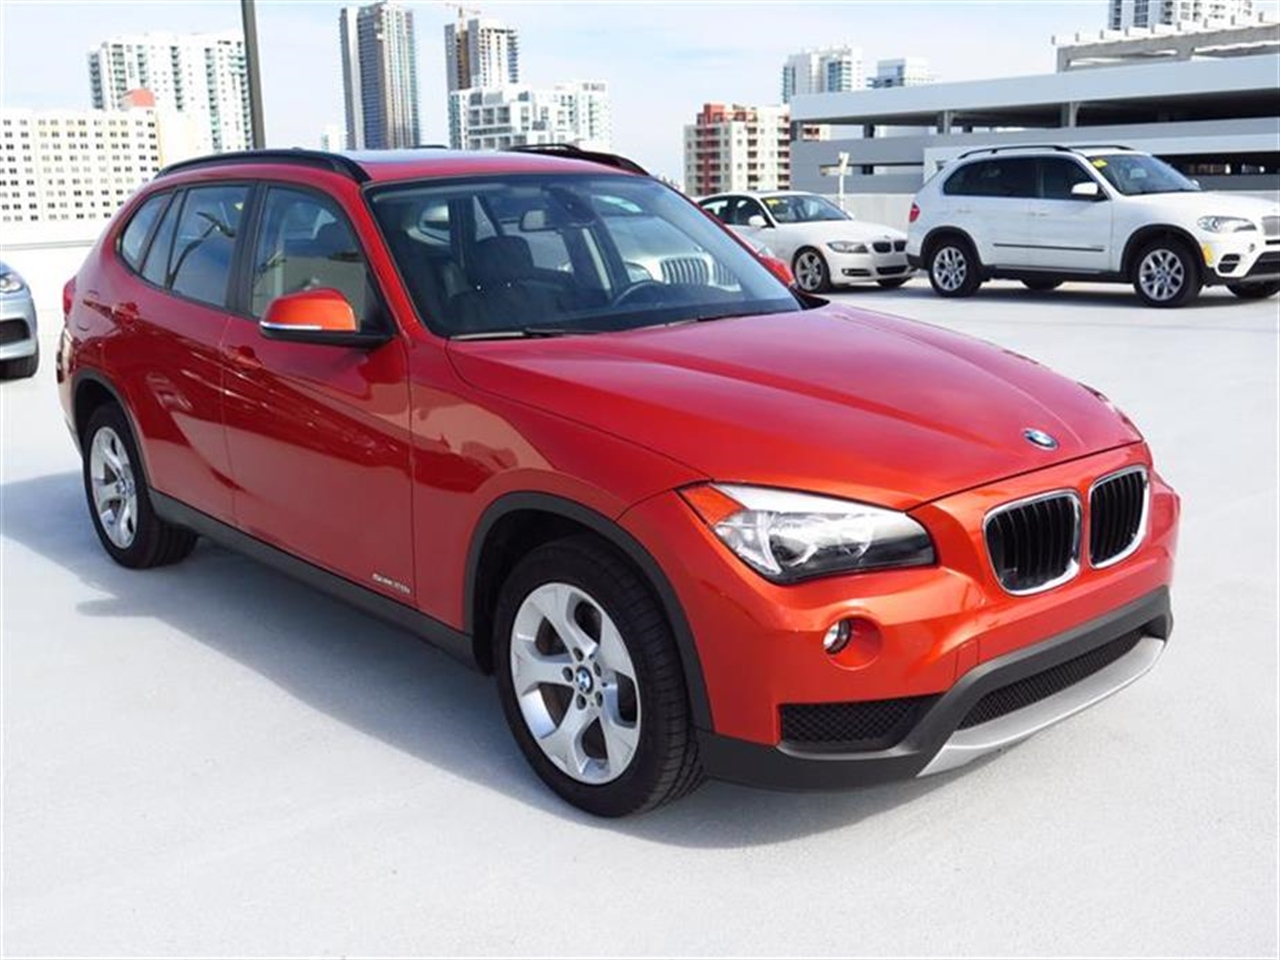 2014 BMW X1 RWD 4dr sDrive28i 6637 miles 2 Seatback Storage Pockets 3 12V DC Power Outlets LEATH